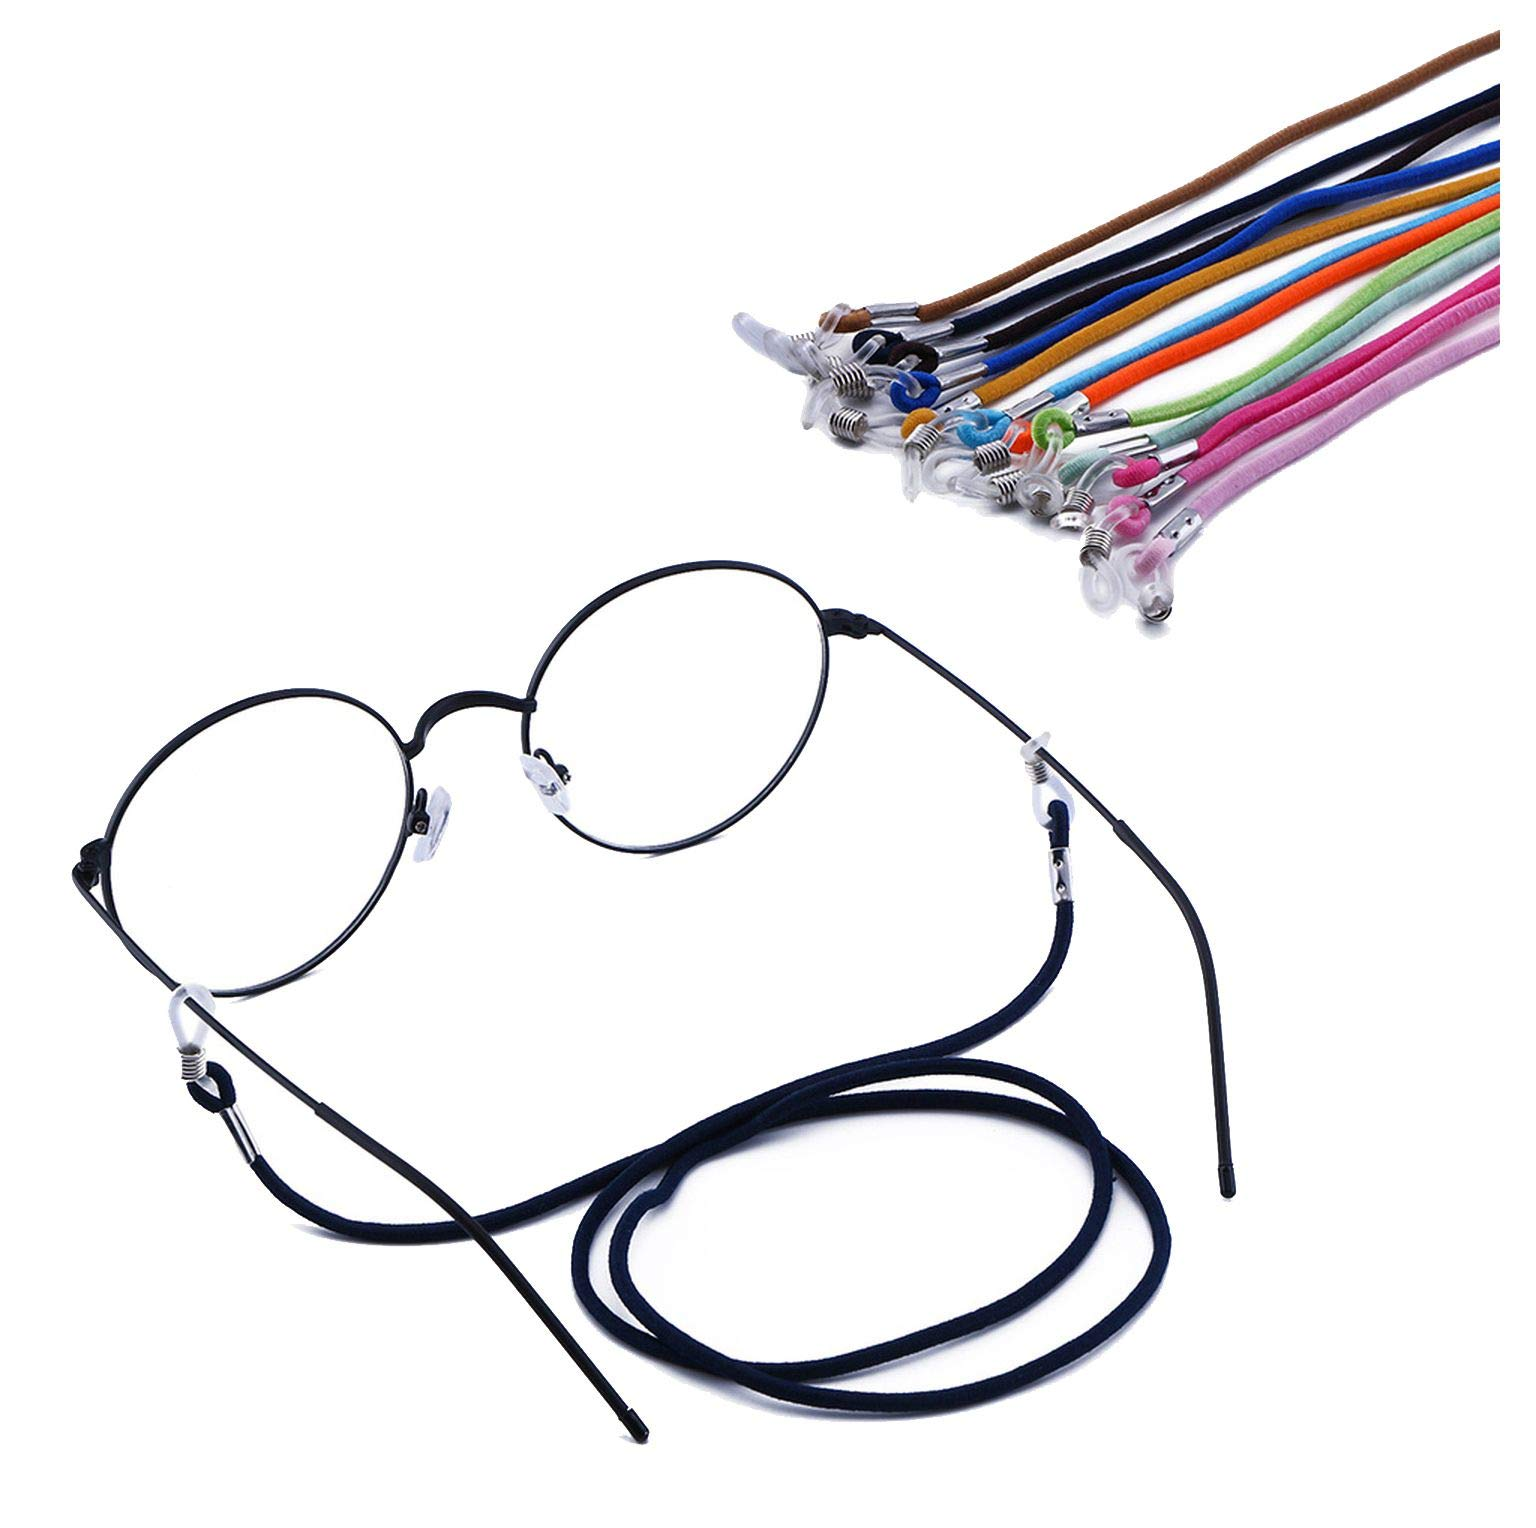 Glasses Spring Chain Eyewear Cord Reading Glassesful Cord 120pcs by RHYS DOBSON